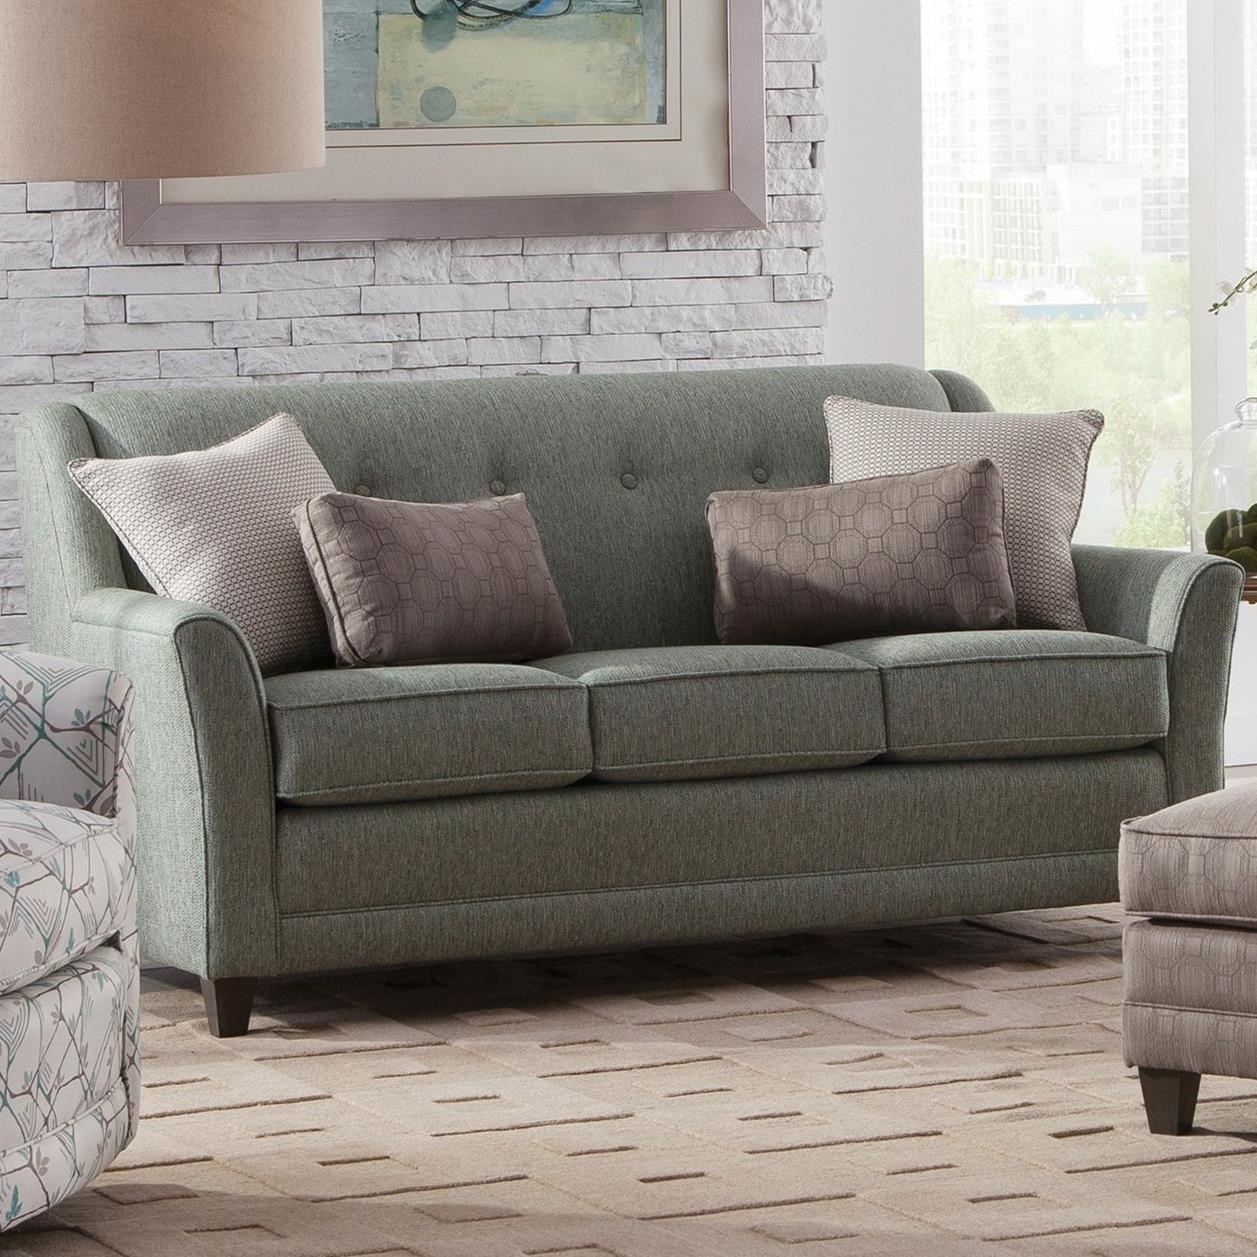 236 Mid-Size Sofa by Smith Brothers at Sprintz Furniture